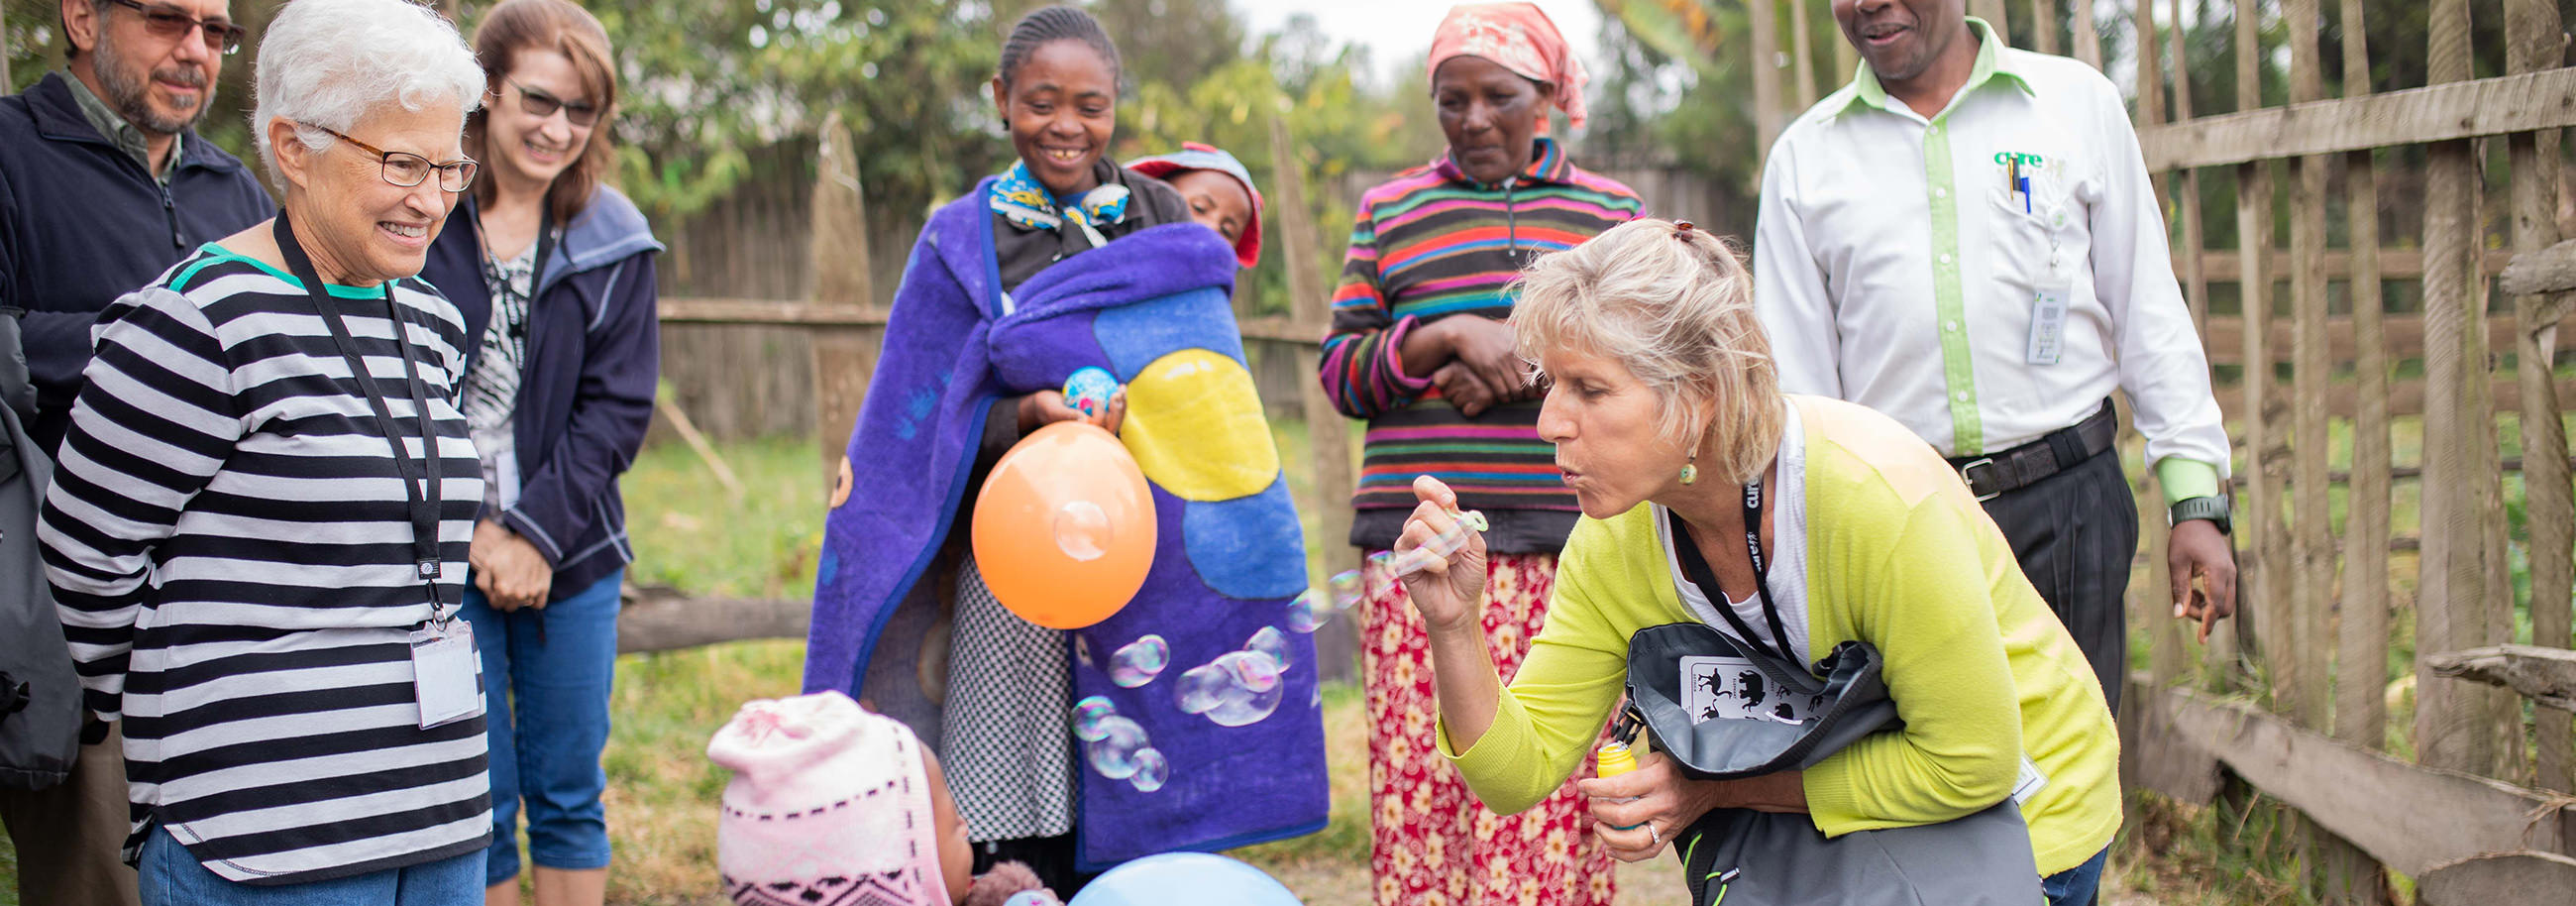 Darlene Smith, Garden Spot Village resident, and Brenda Kauffman, Garden Spot Village team member interact with a child during a Garden Spot Village Travel with Purpose trip with CURE Kenya.